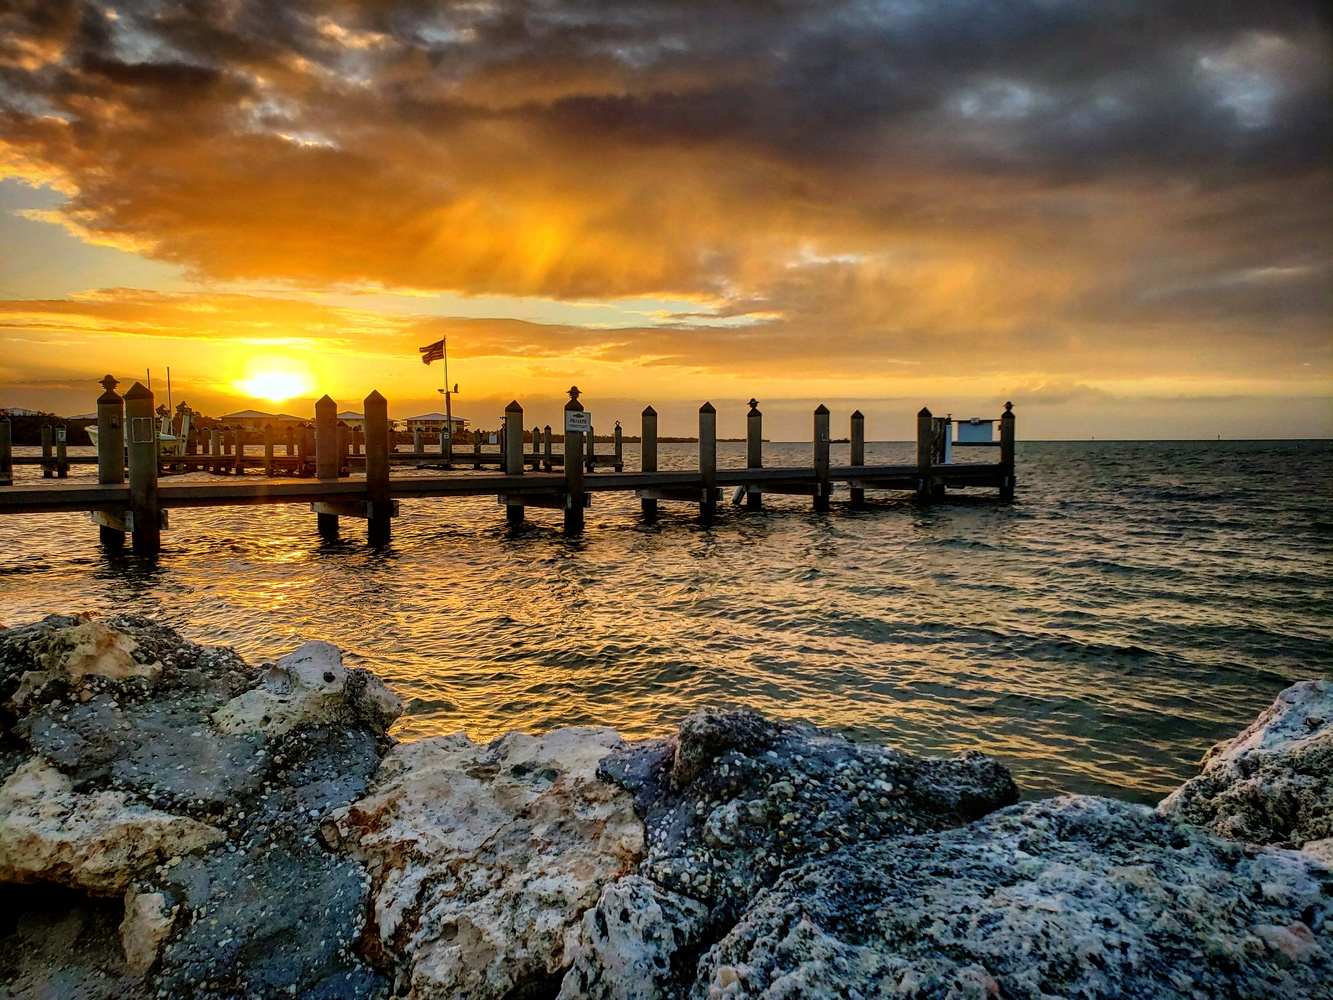 Key West Sunset by Rick DeLucia